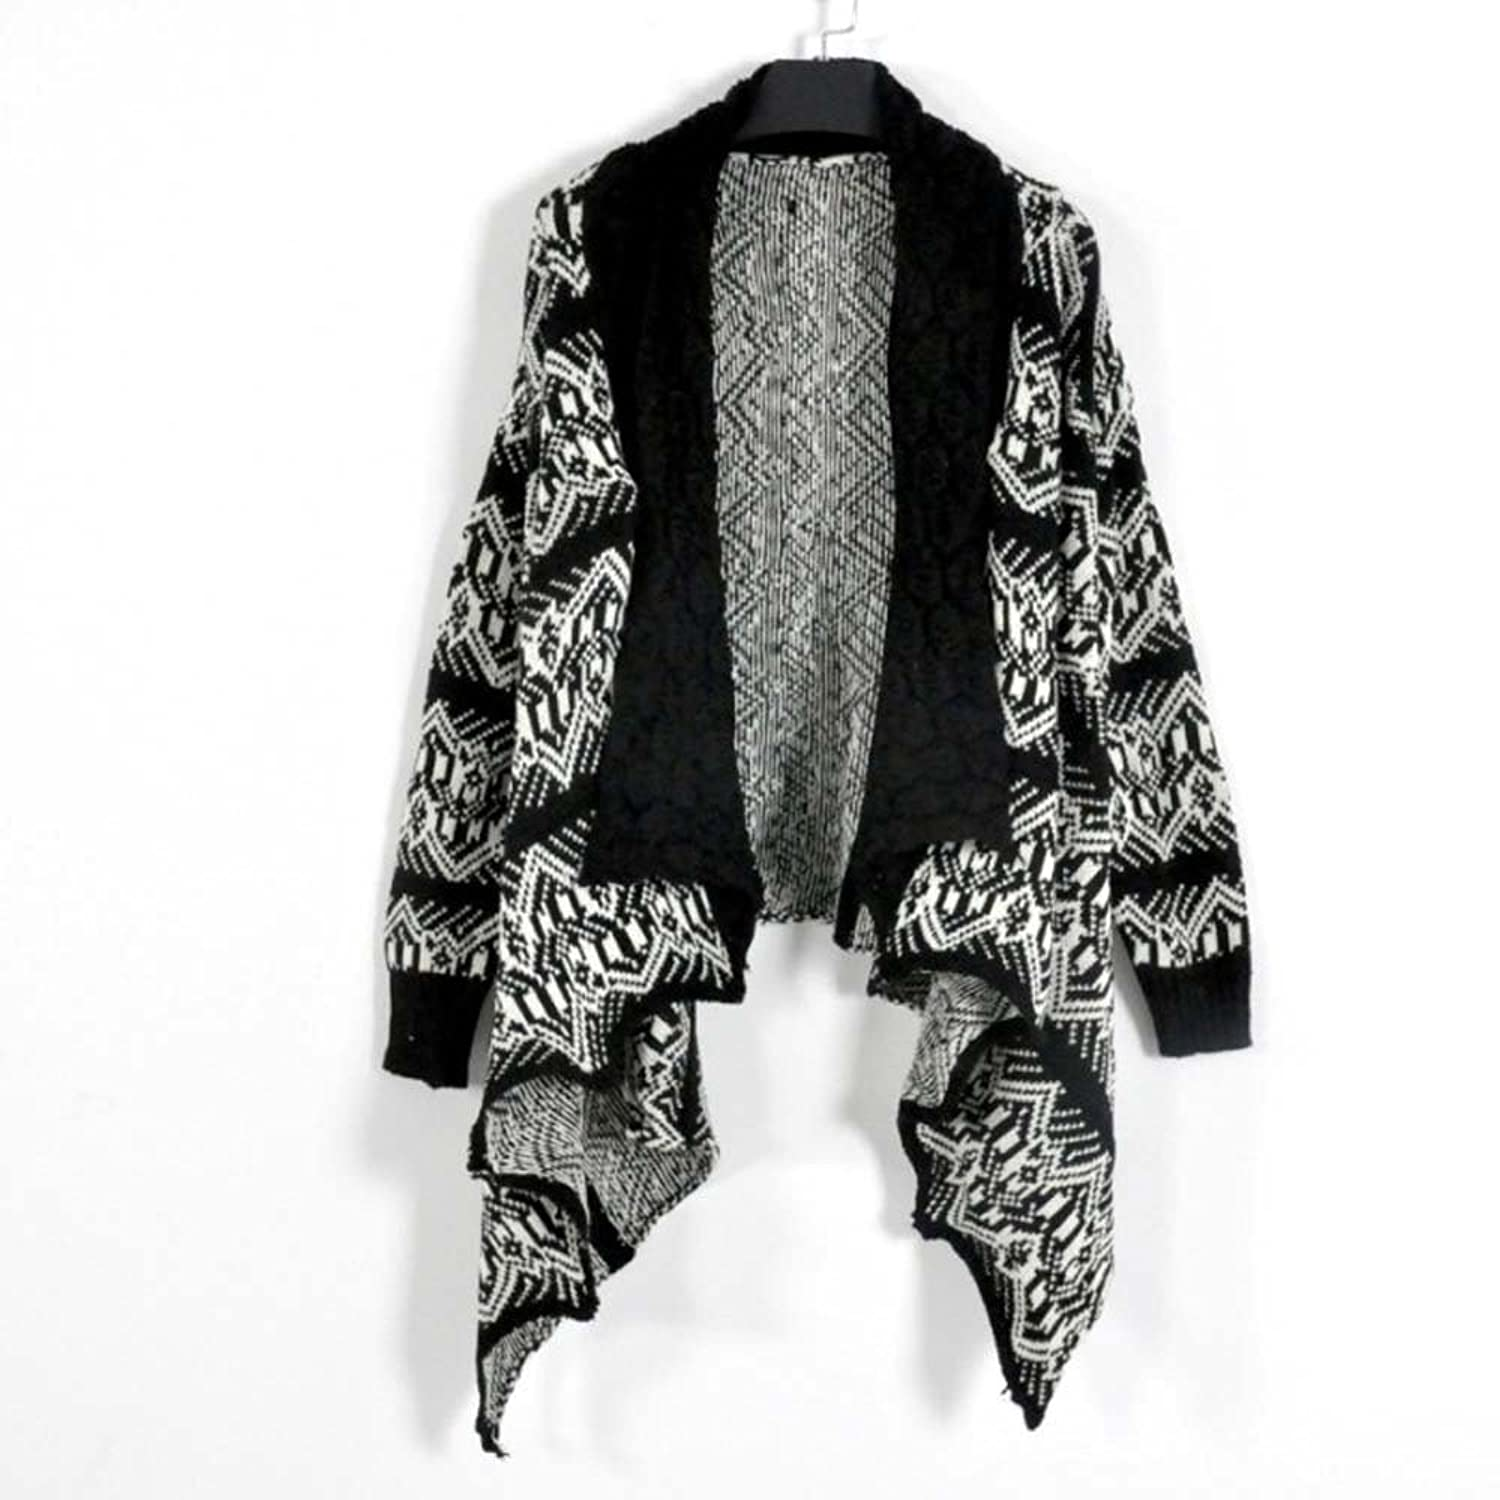 Piggy2gether - Women's Large Size Poncho Sweater Cardigan, Black and White